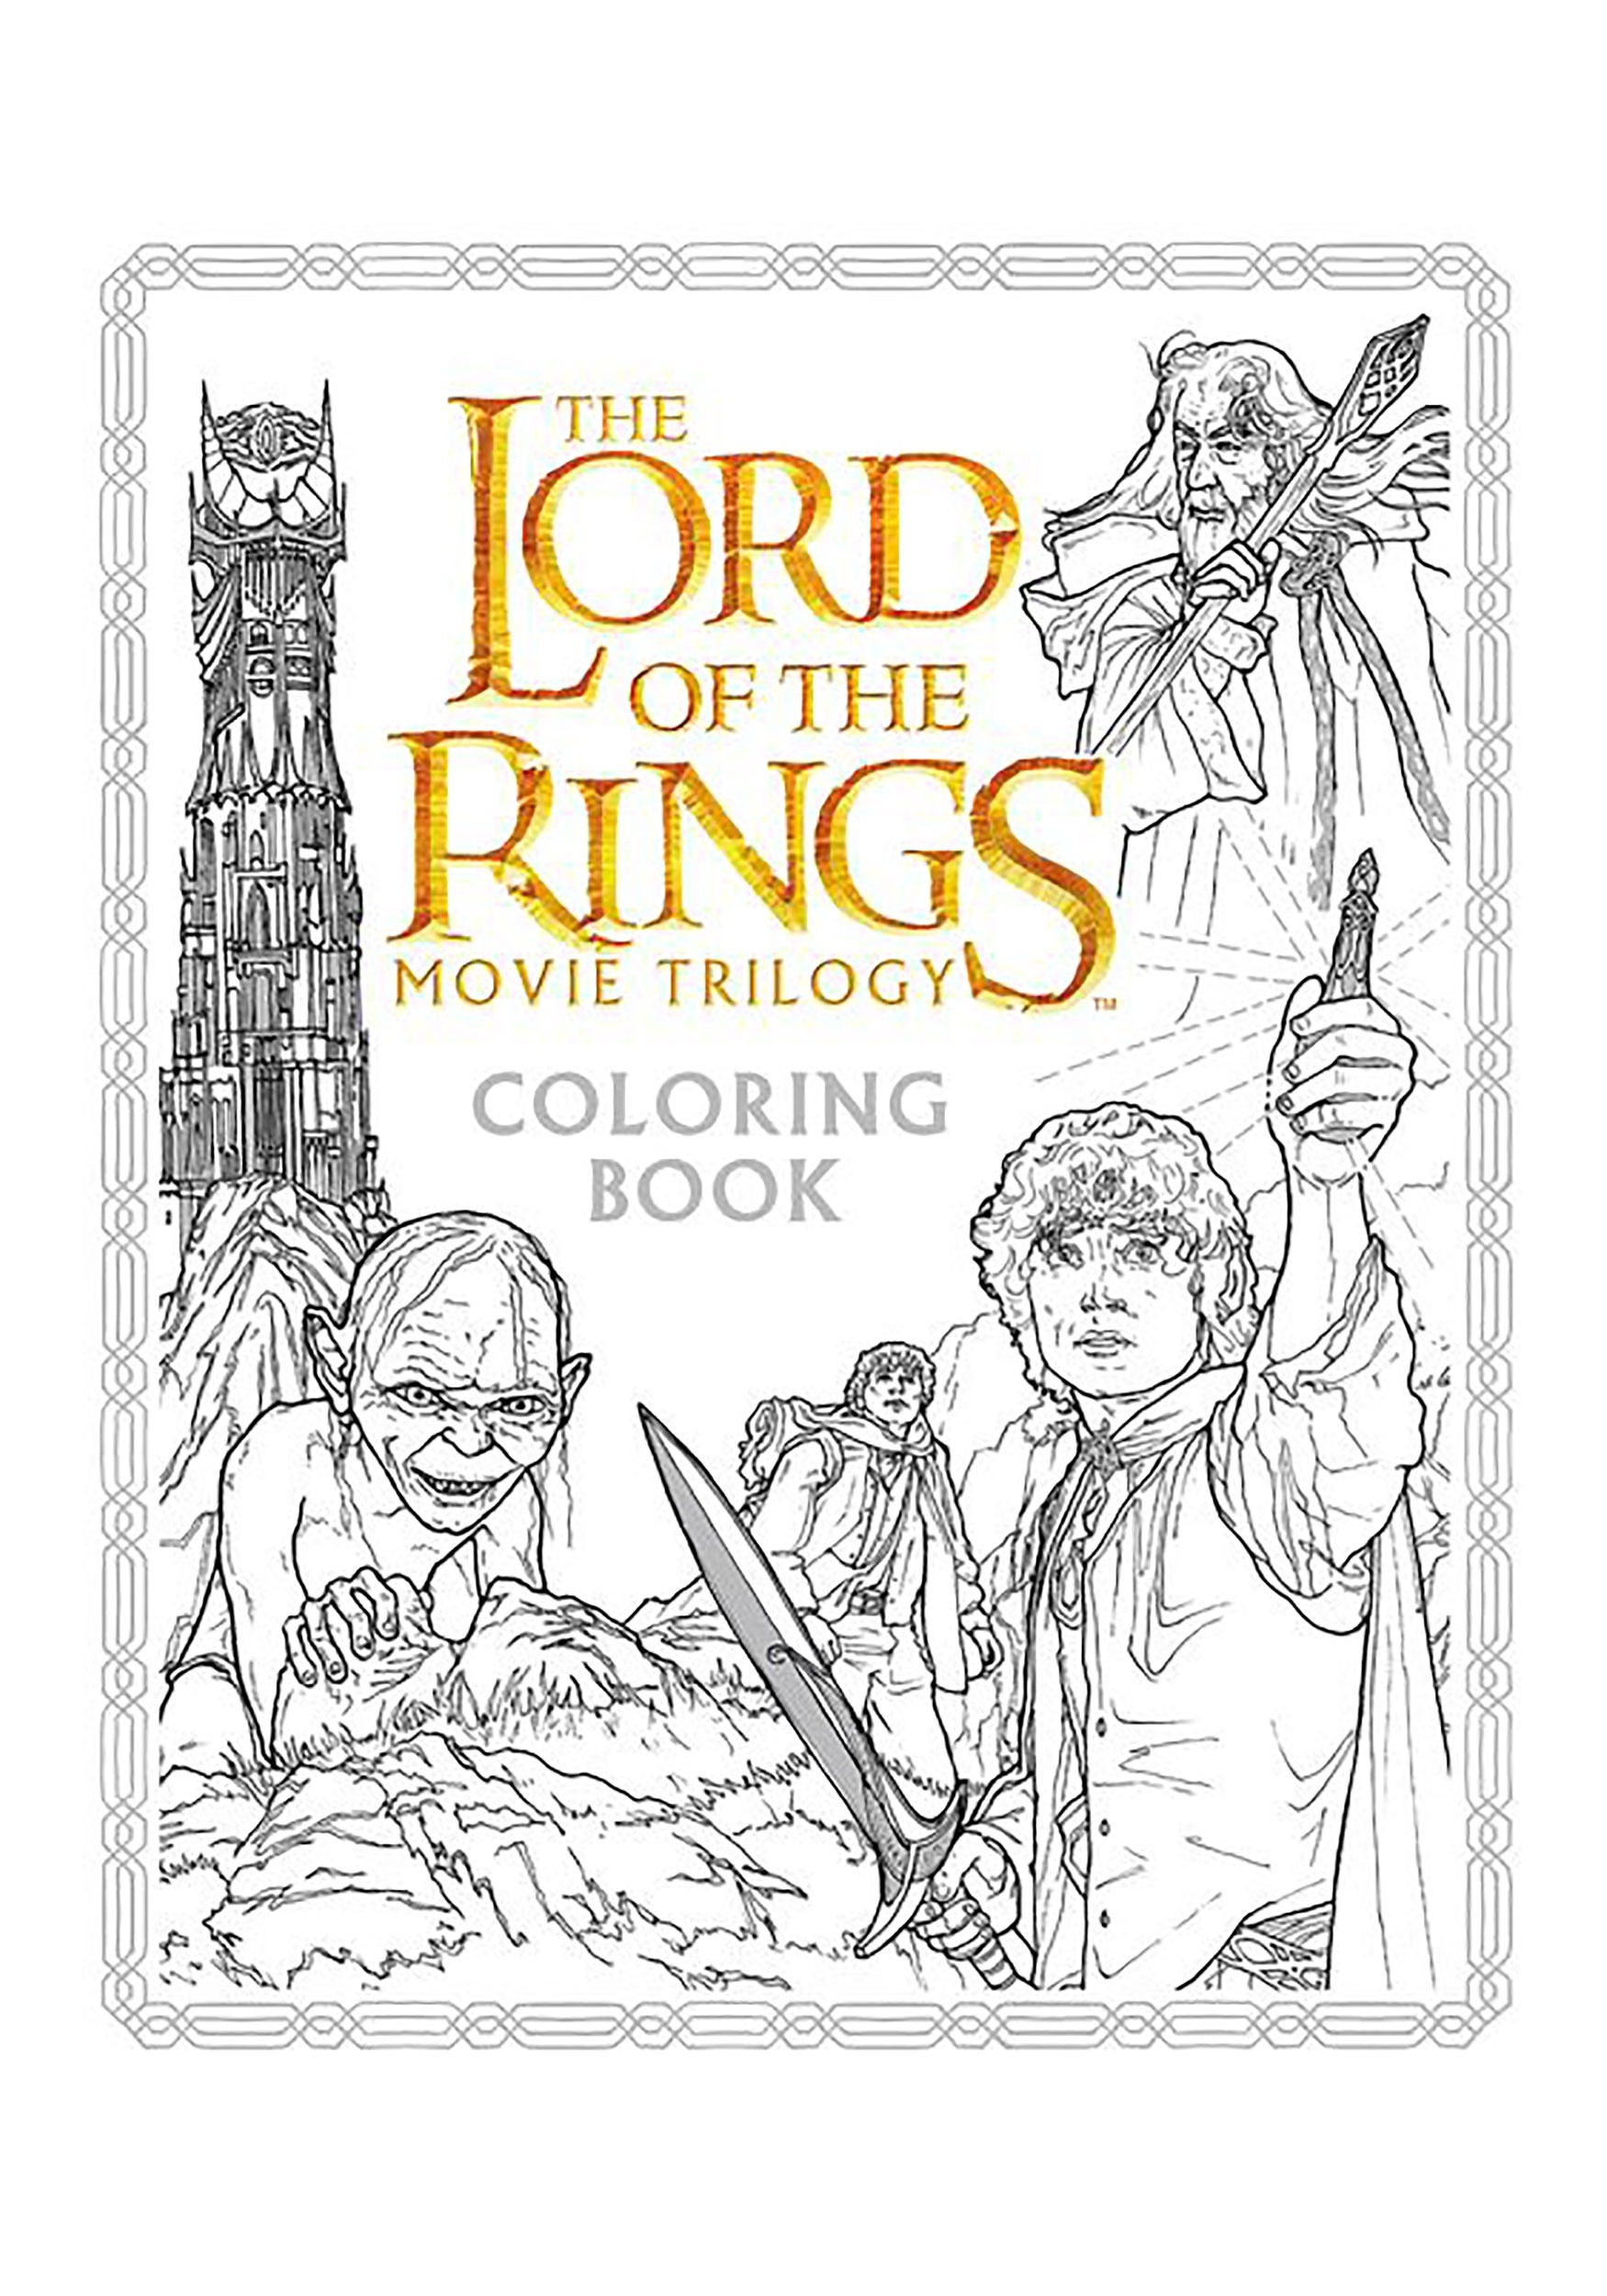 The Lord of the Rings Trilogy Coloring Book